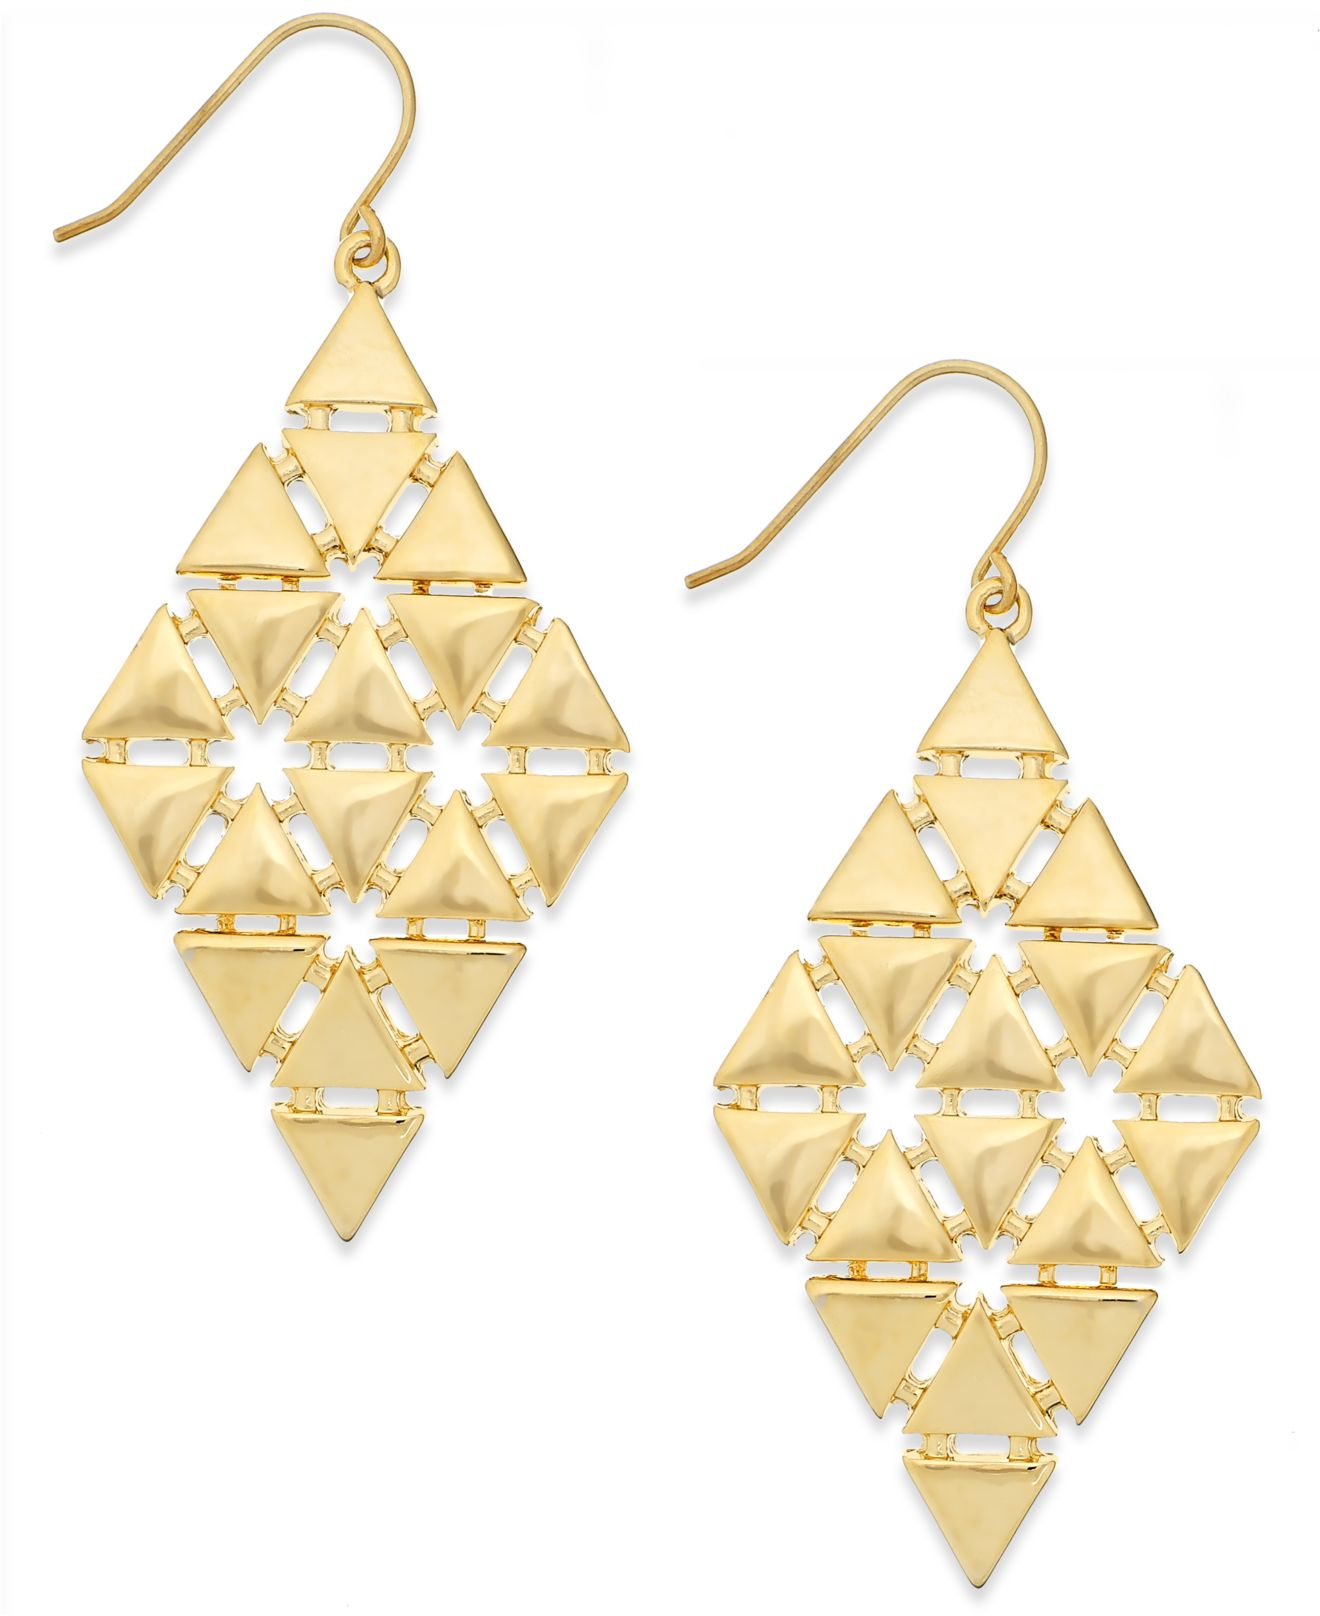 Lauren by ralph lauren GoldTone Triangle Chandelier Earrings in – Gold Tone Chandelier Earrings